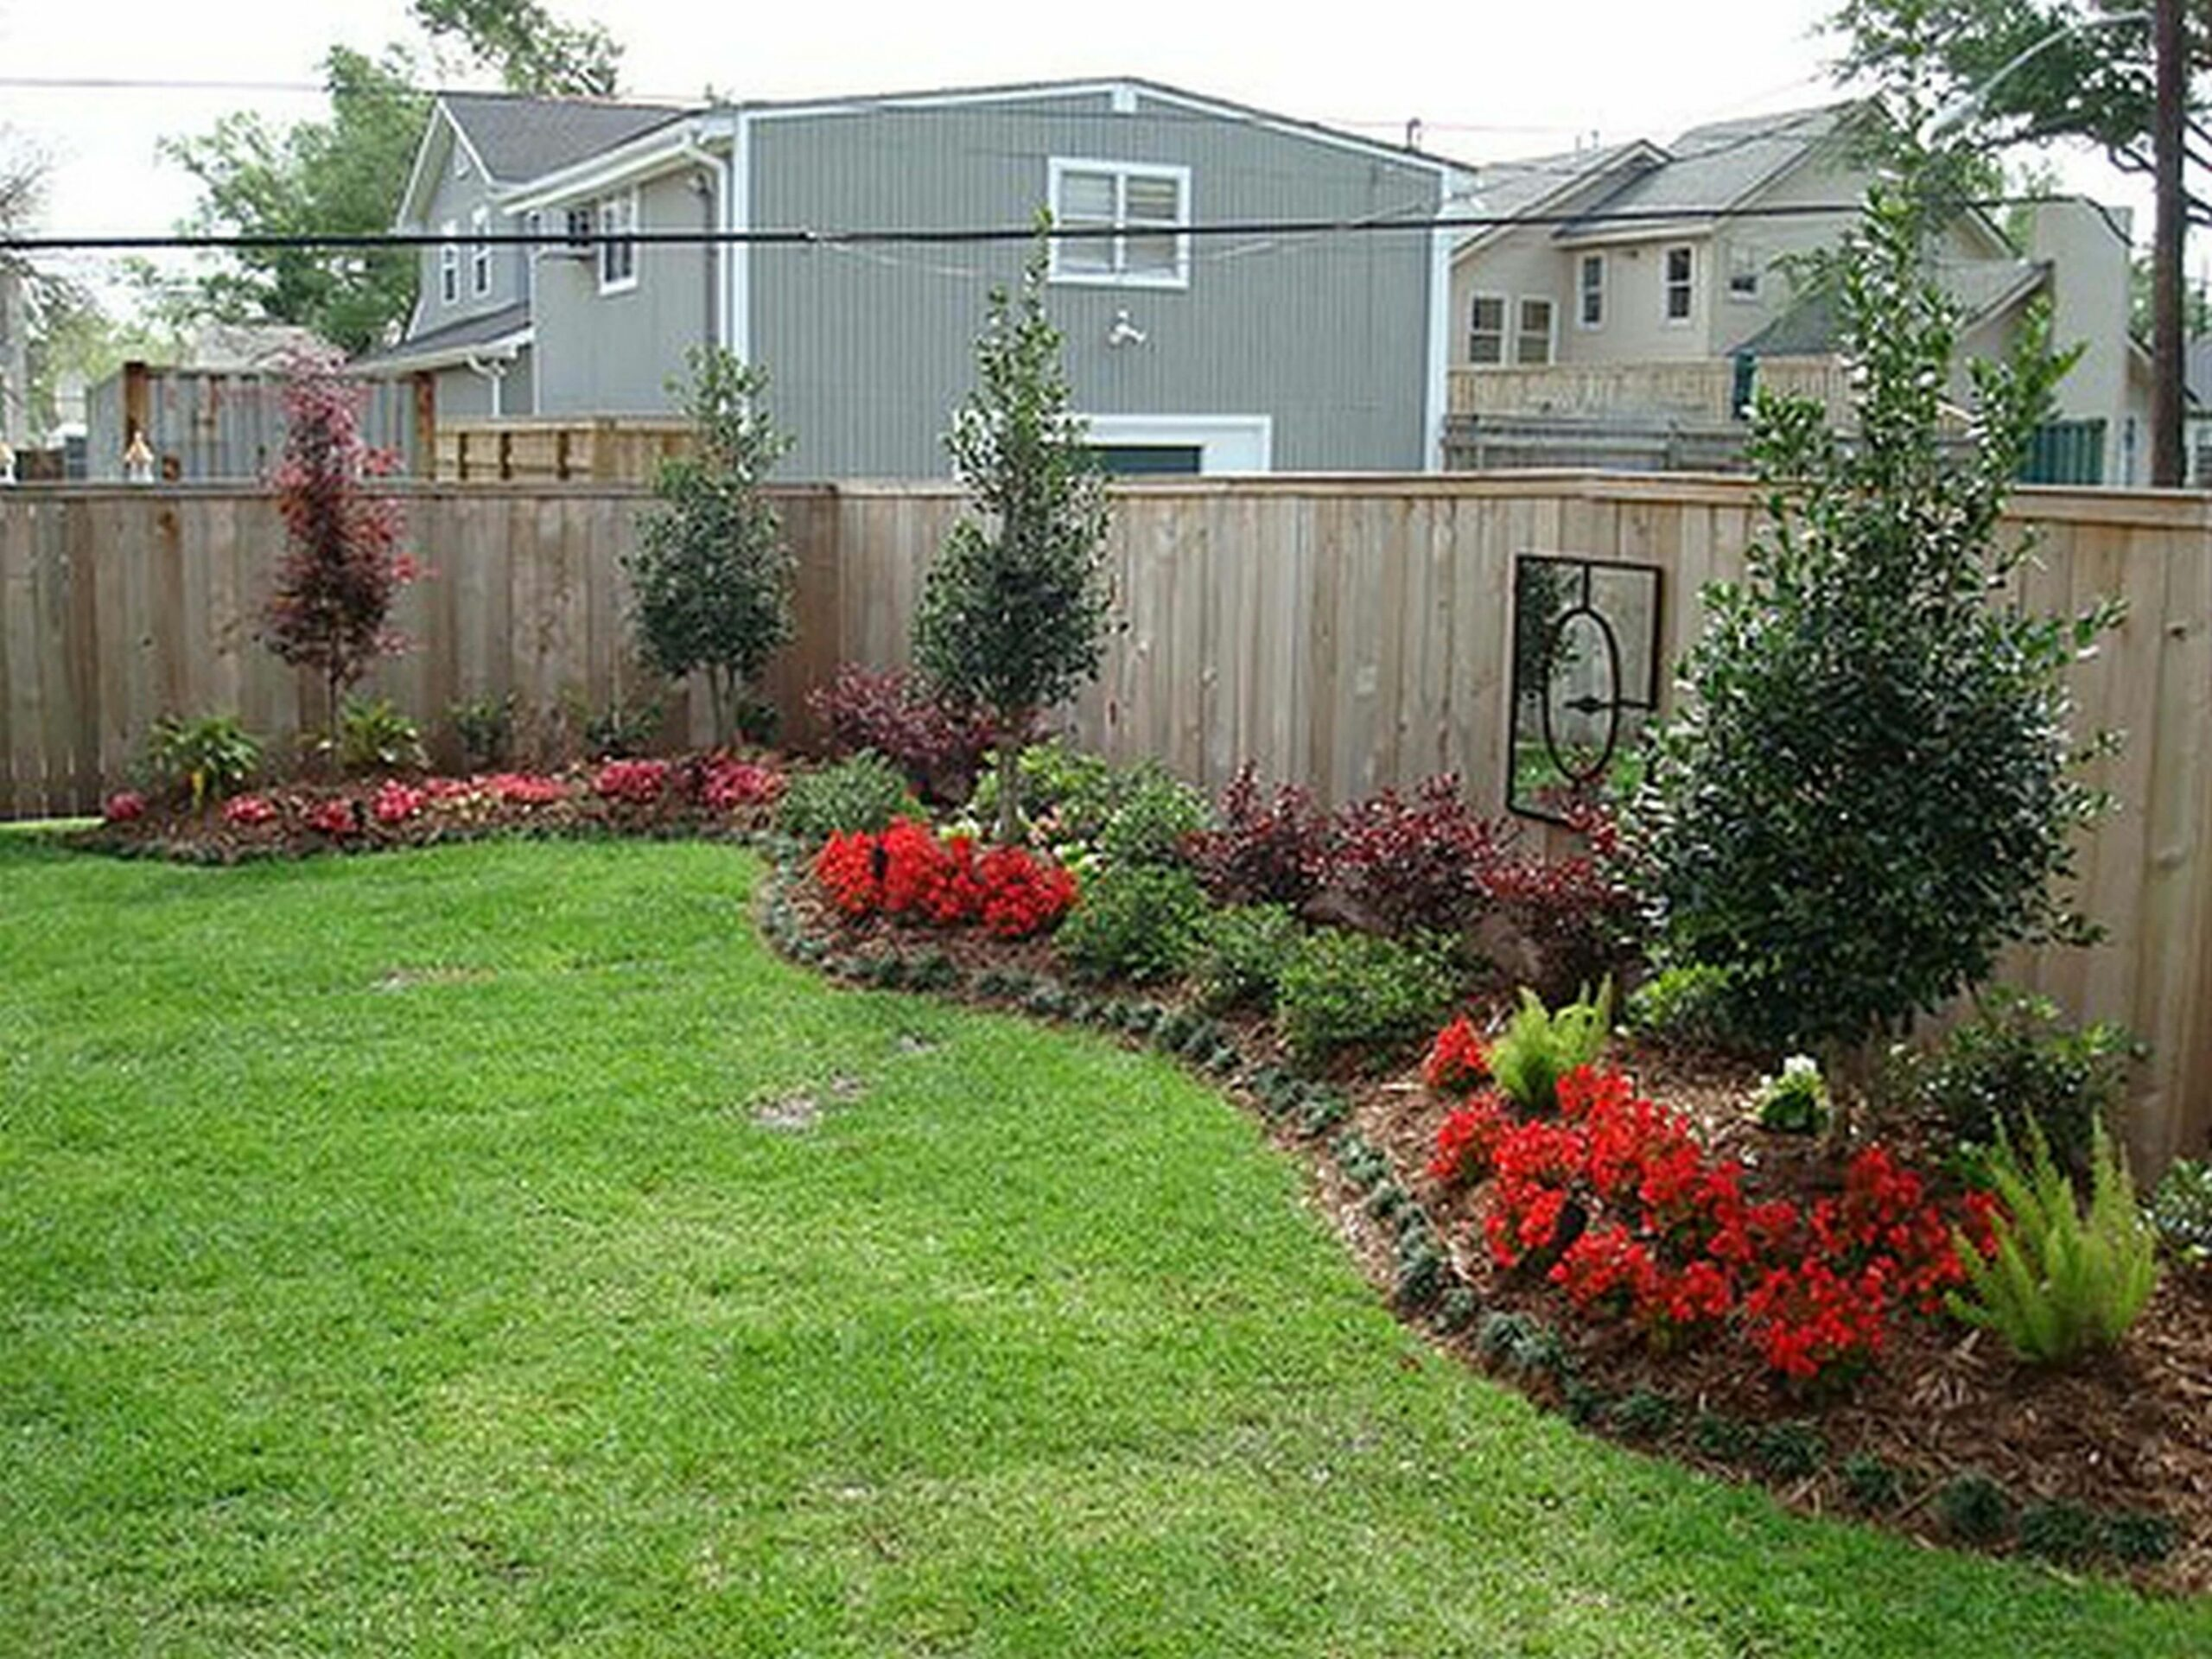 Pictures Of Simple Backyard Landscaping Ideas… | Small yard ..